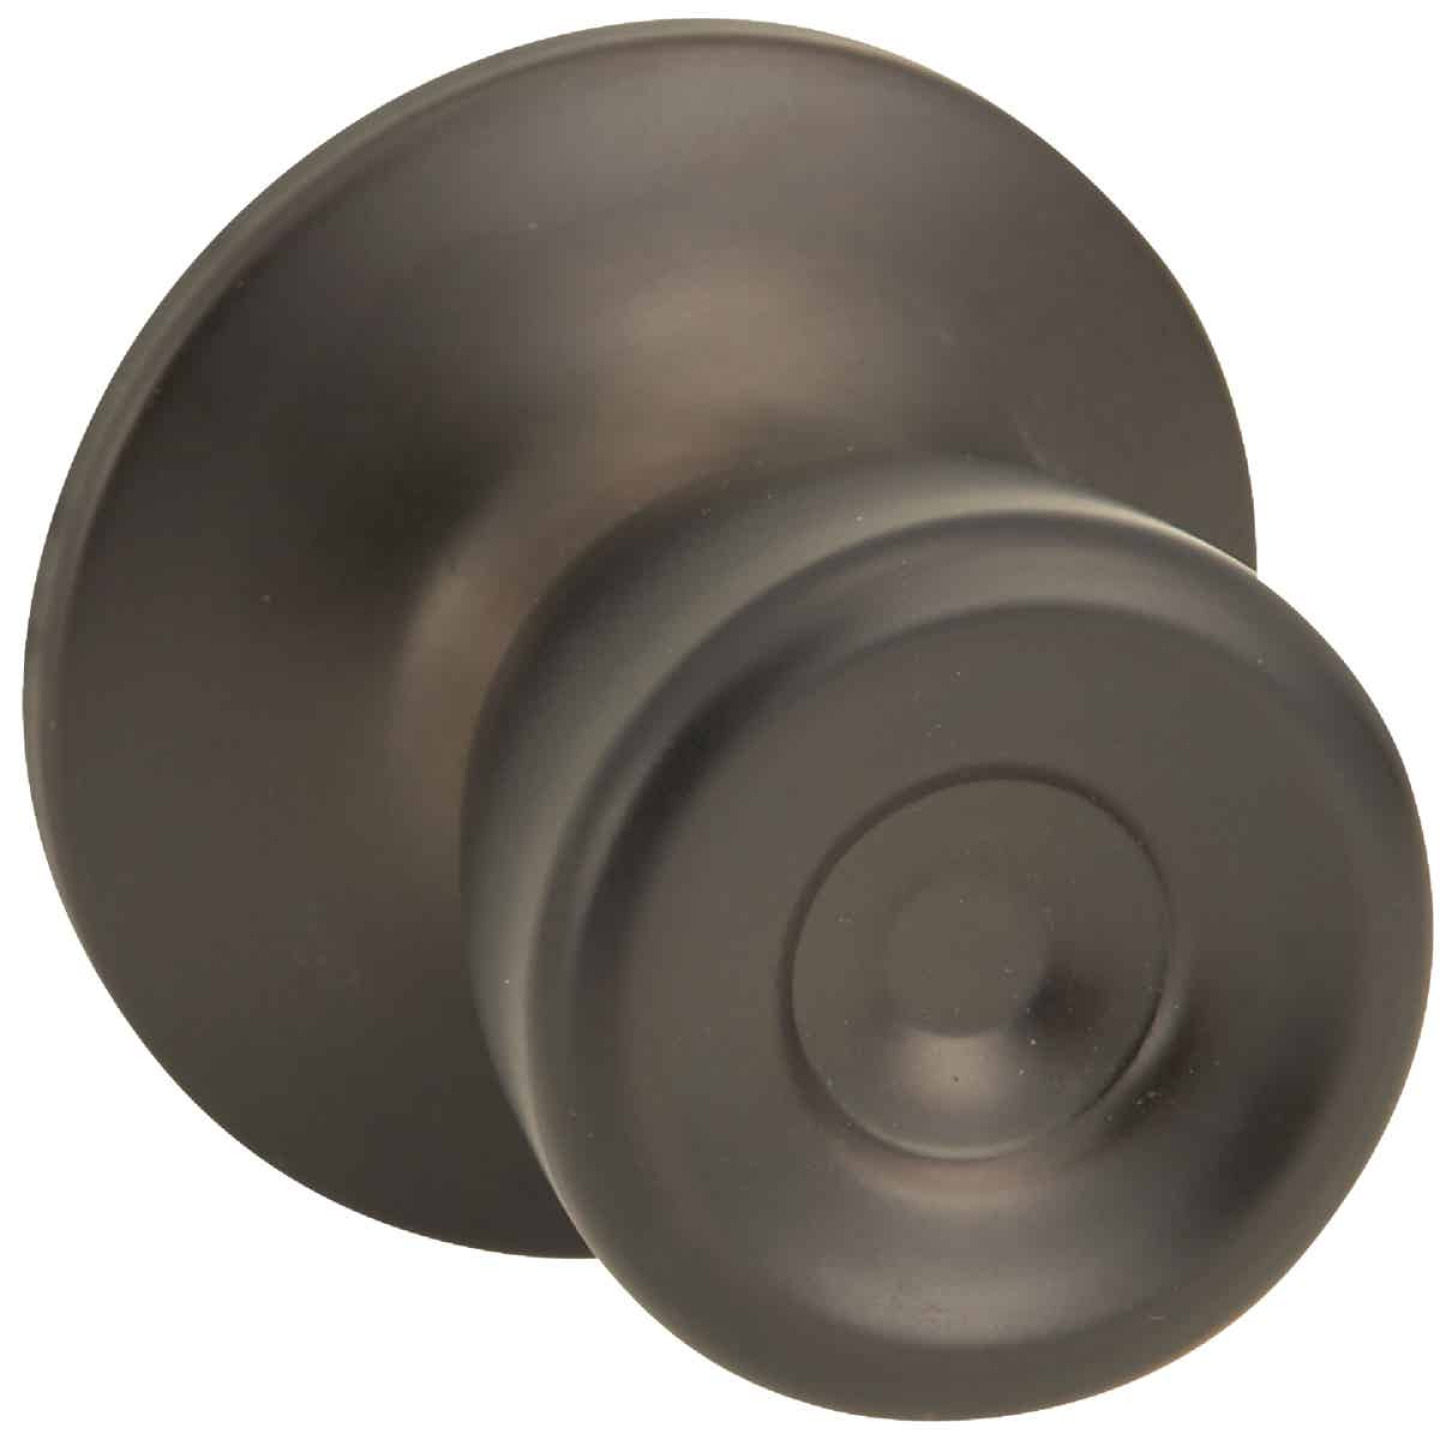 Steel Pro Oil Rubbed Bronze Hall & Closet Door Knob Image 1